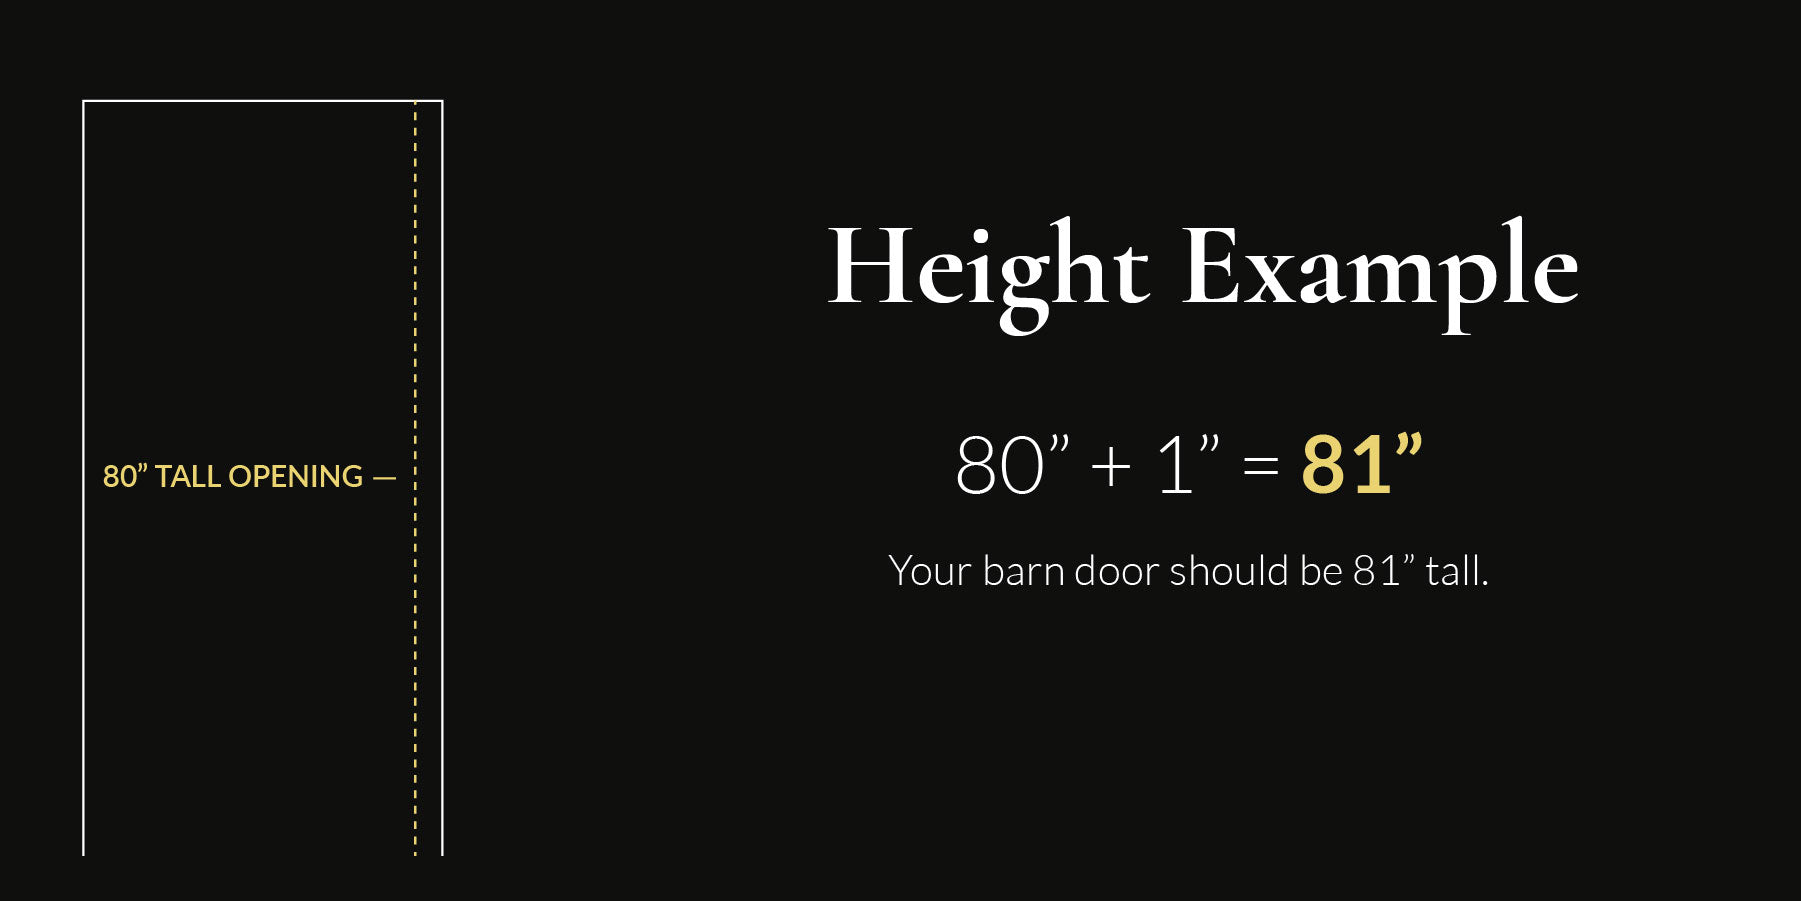 Barn door height measurement example illustration. Explanation of the instructions are below the image.